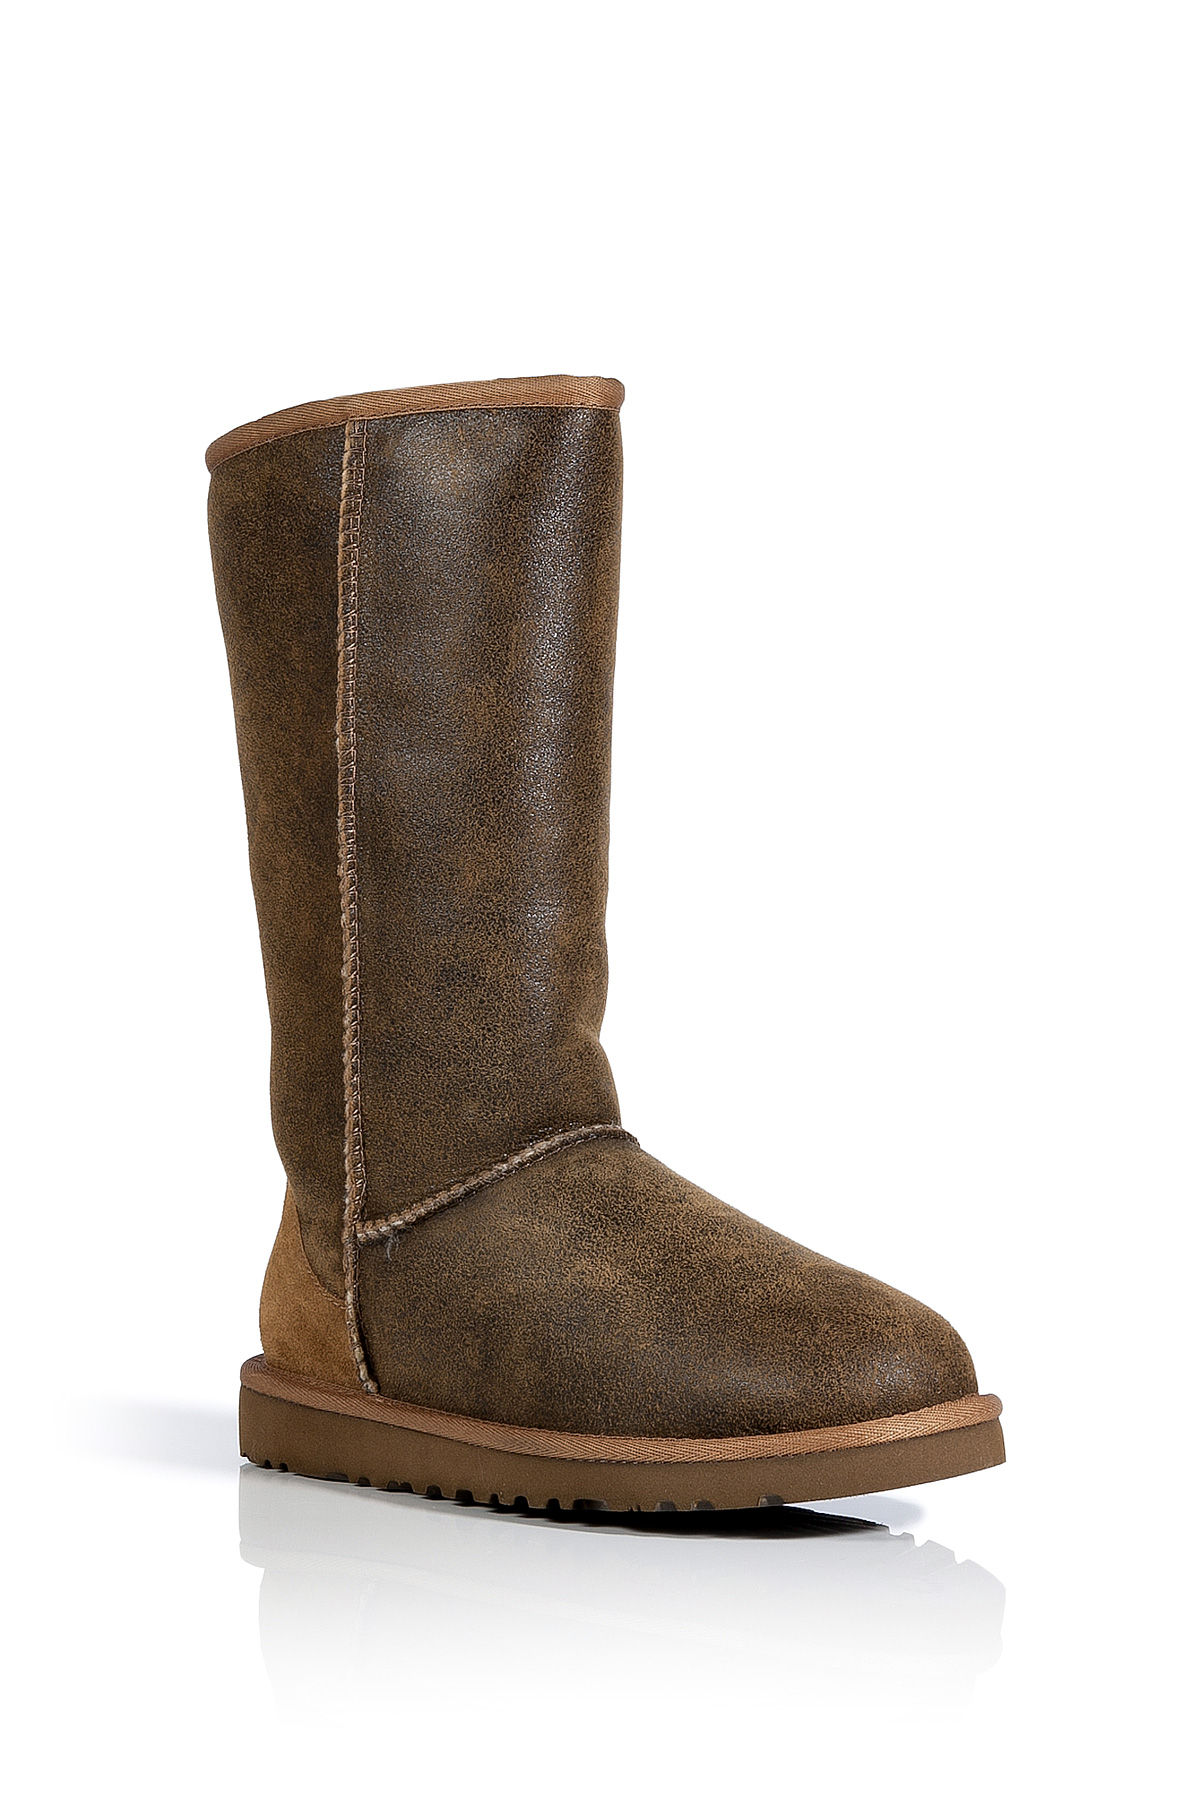 52ed7785f4f UGG Brown Chestnut Vintage Classic Tall Bomber Boots